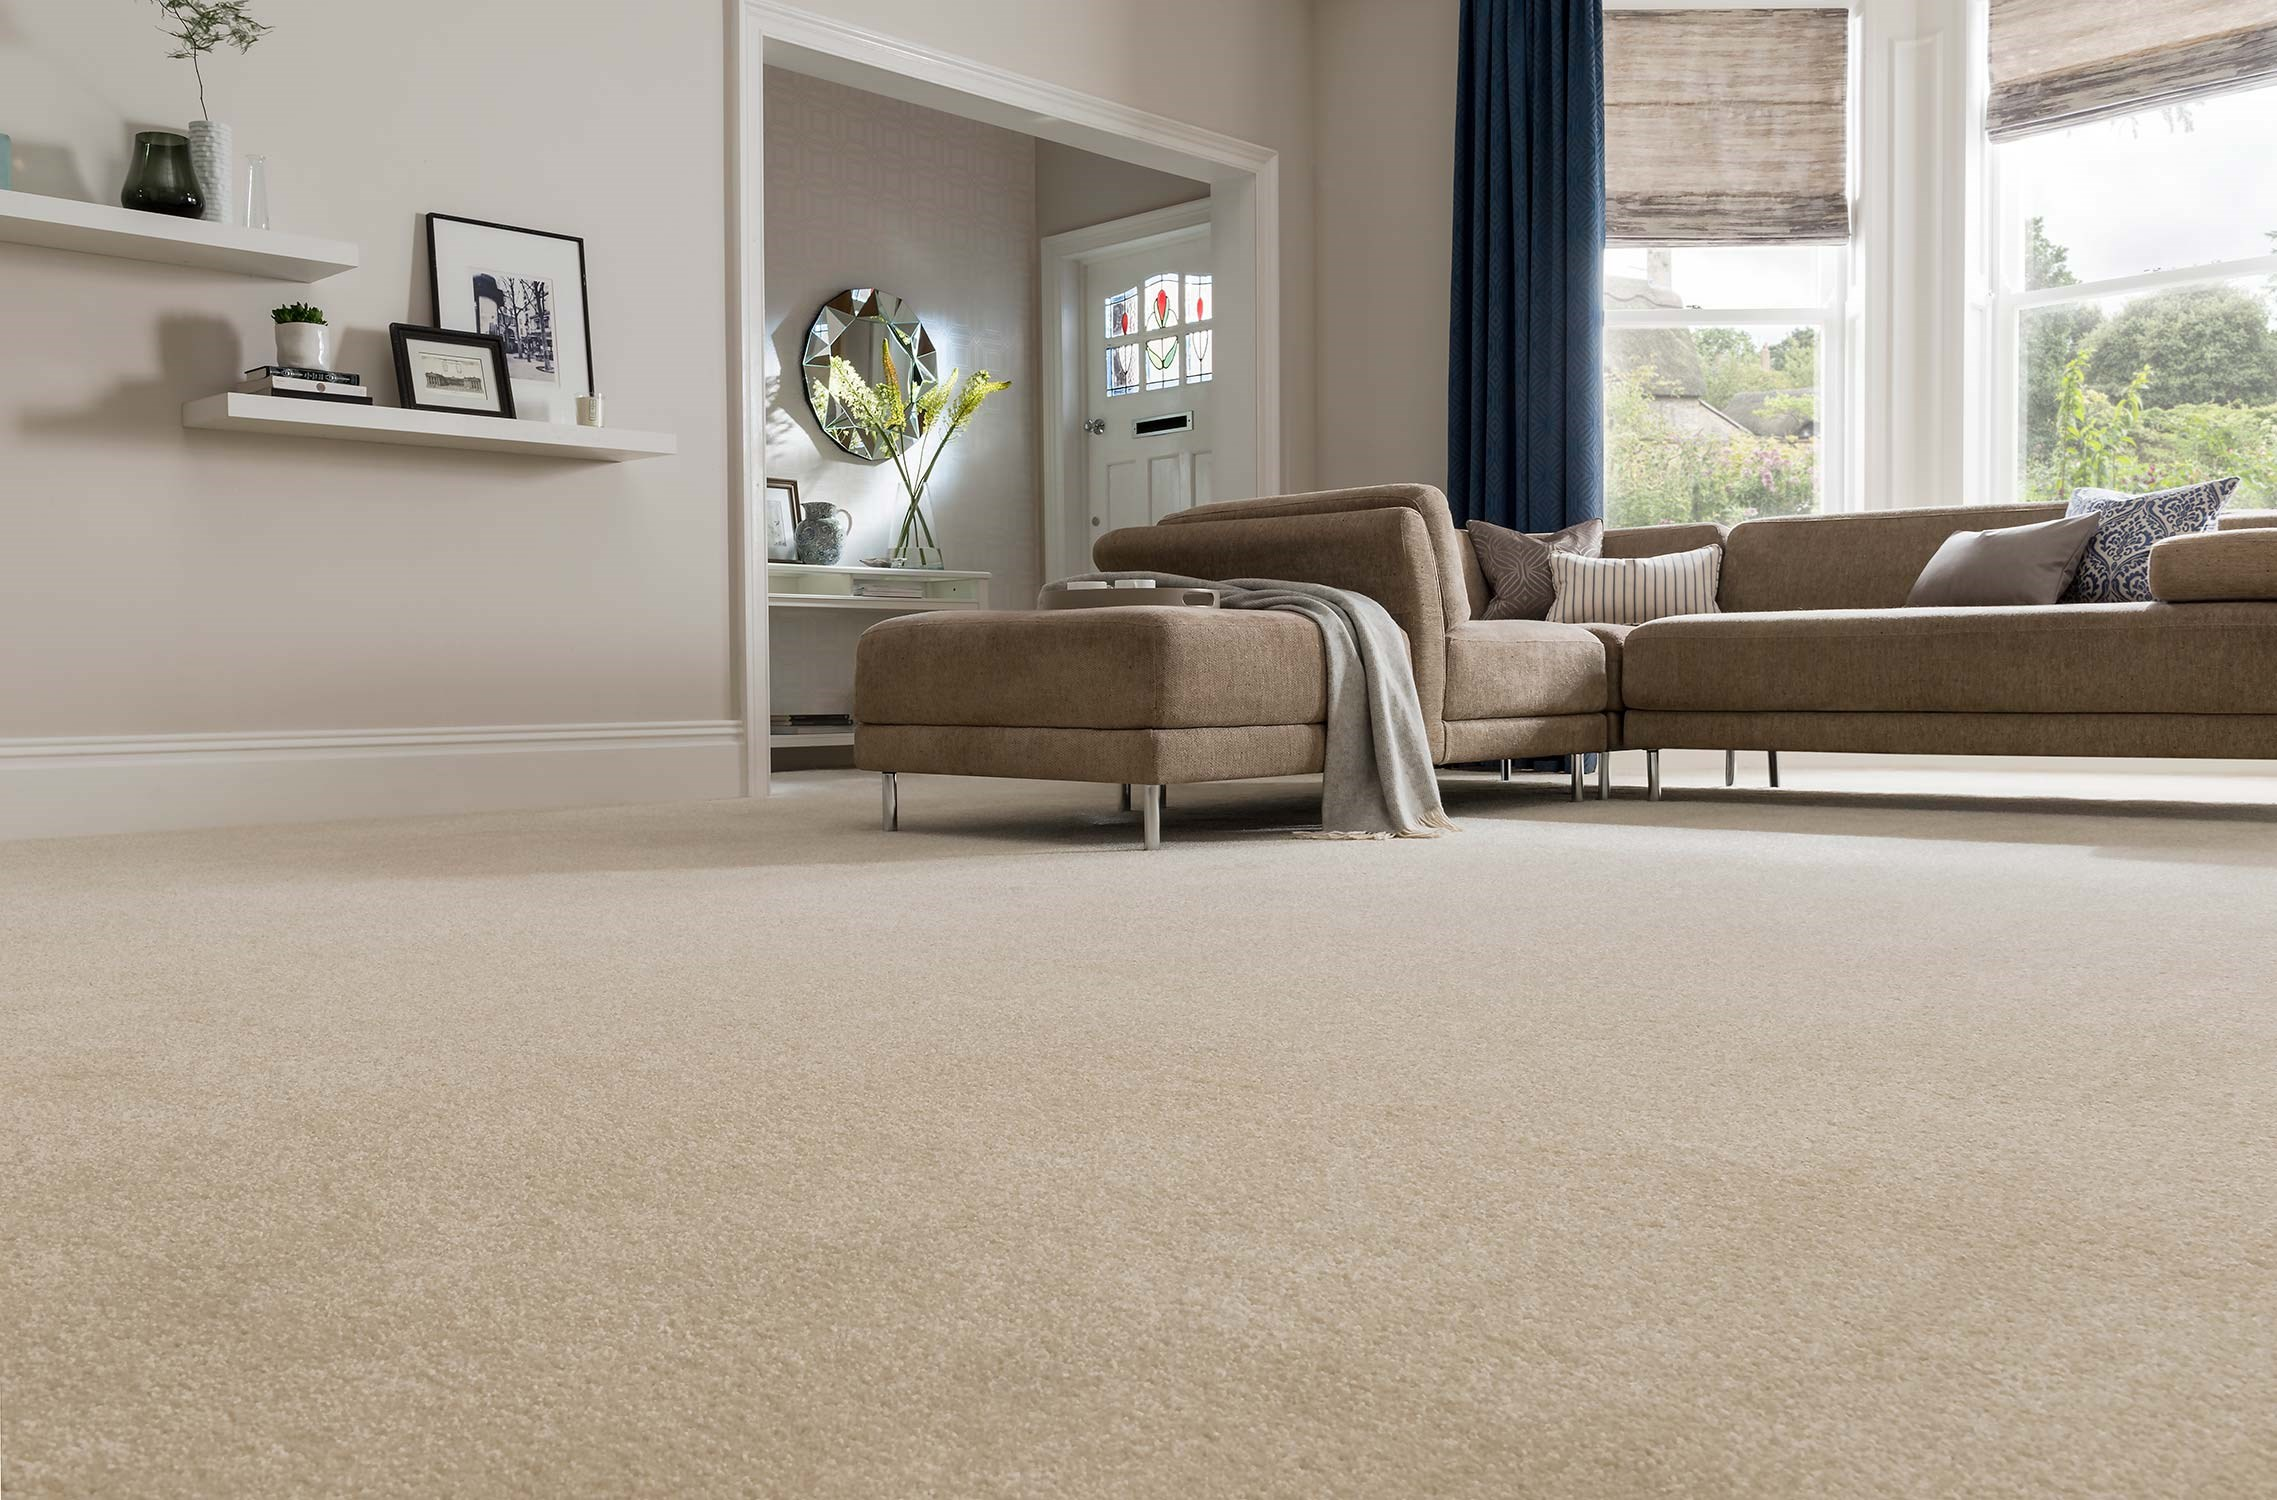 living room carpet - Carpet Ideas For Living Room